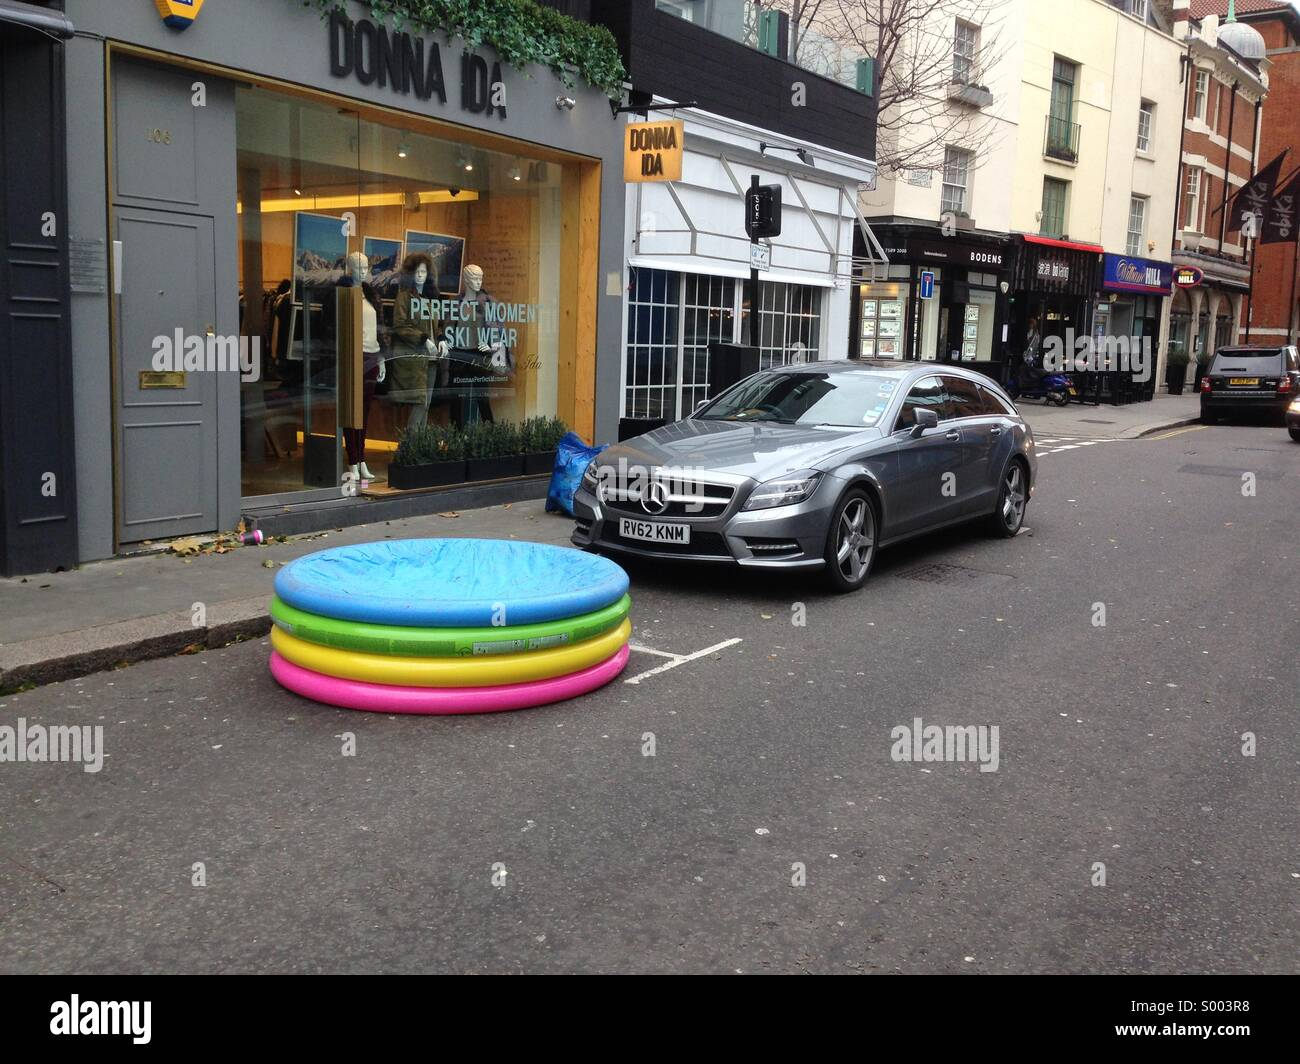 An inflatable swimming pool in used to secure a parking space in Central London - Stock Image